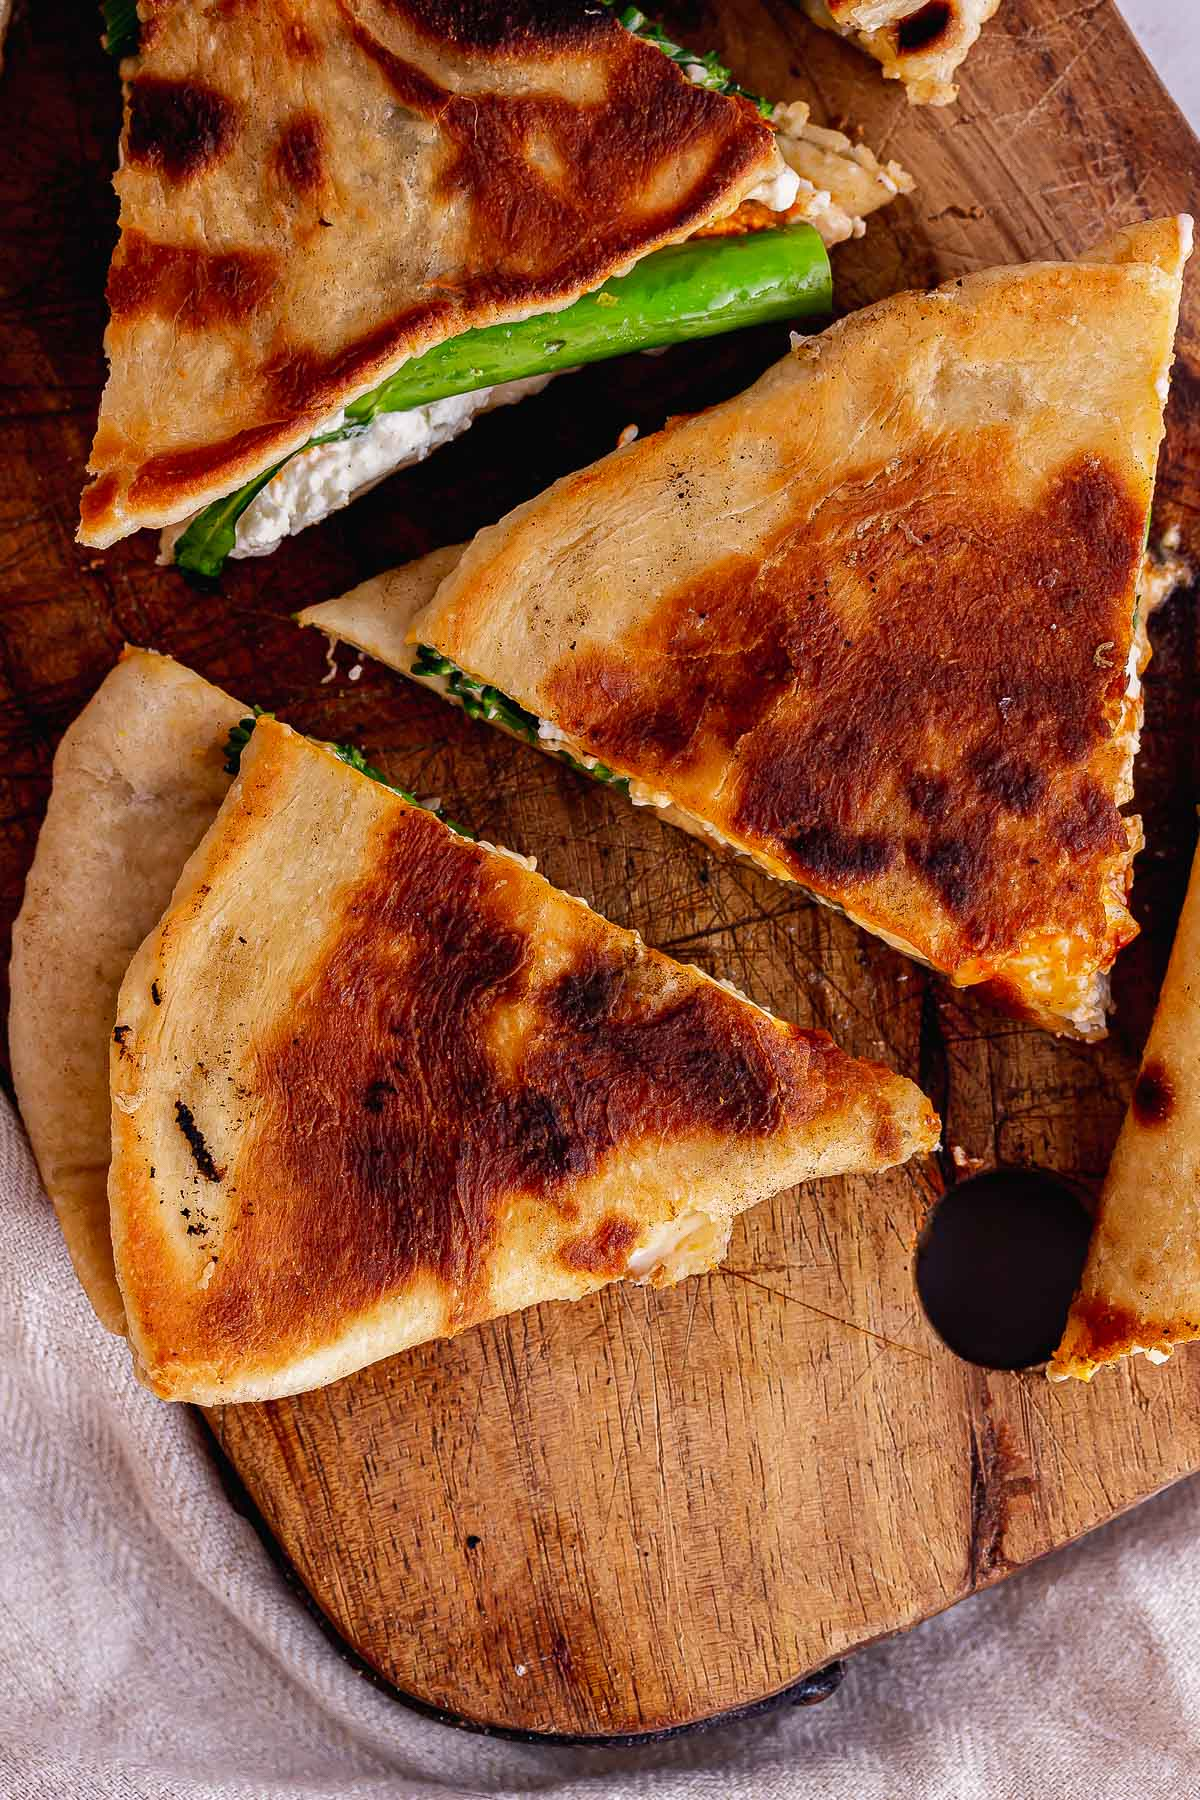 Overhead shot of flatbread triangles on a wooden board